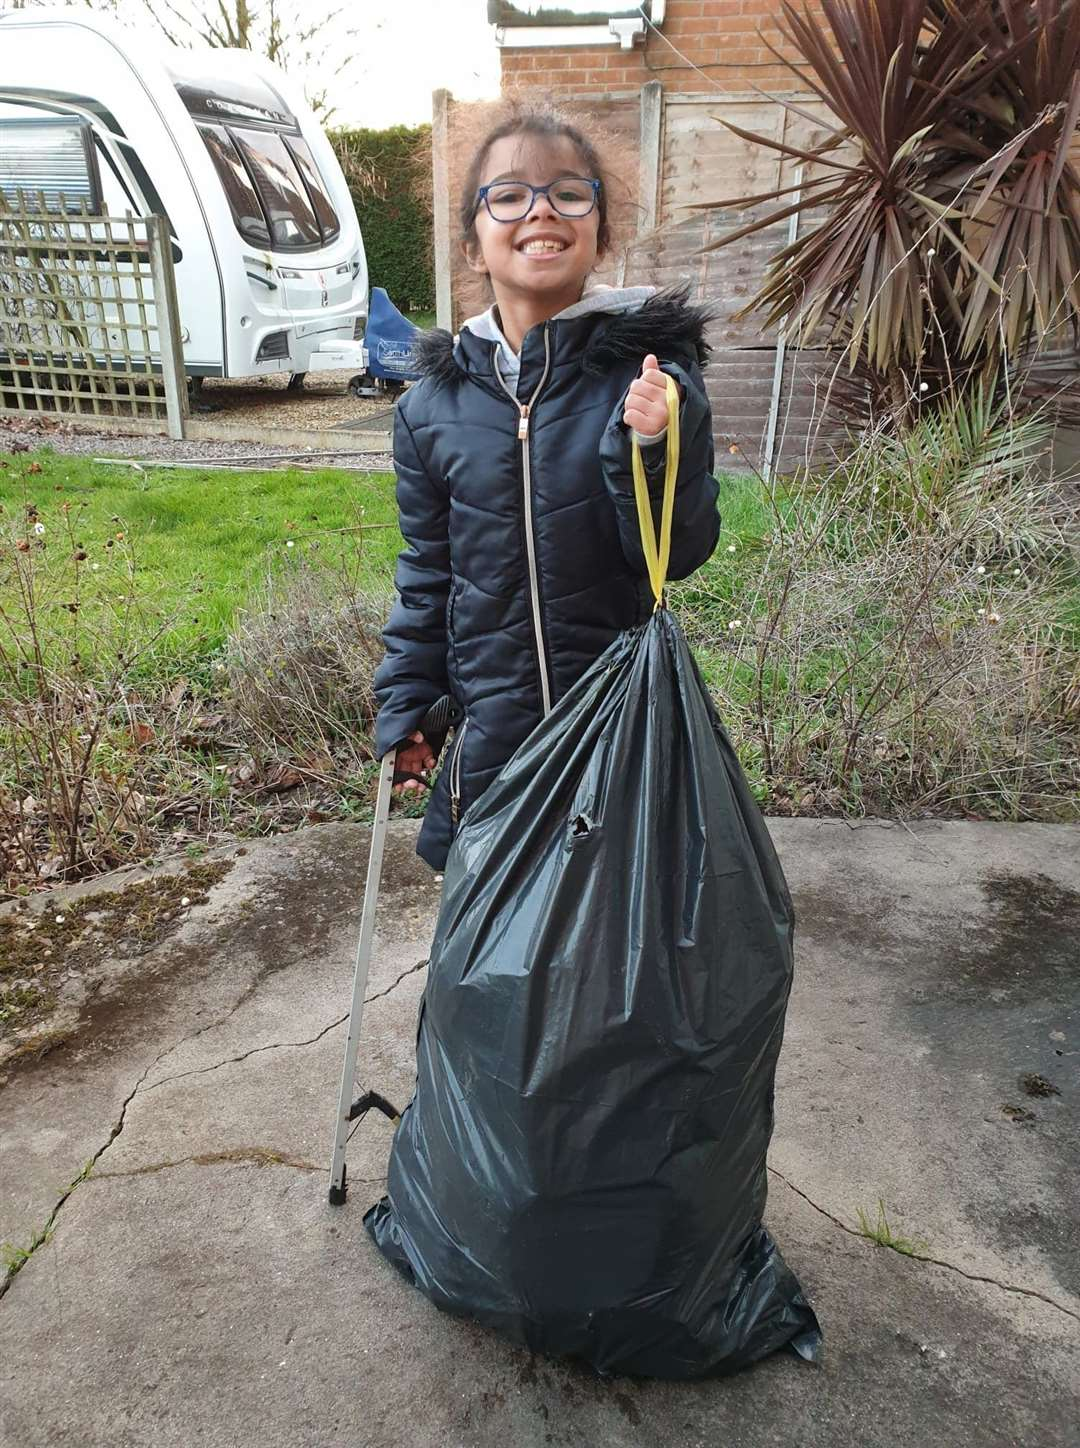 Volunteer Mya Doades has helped Denise with her litter picks in the past.